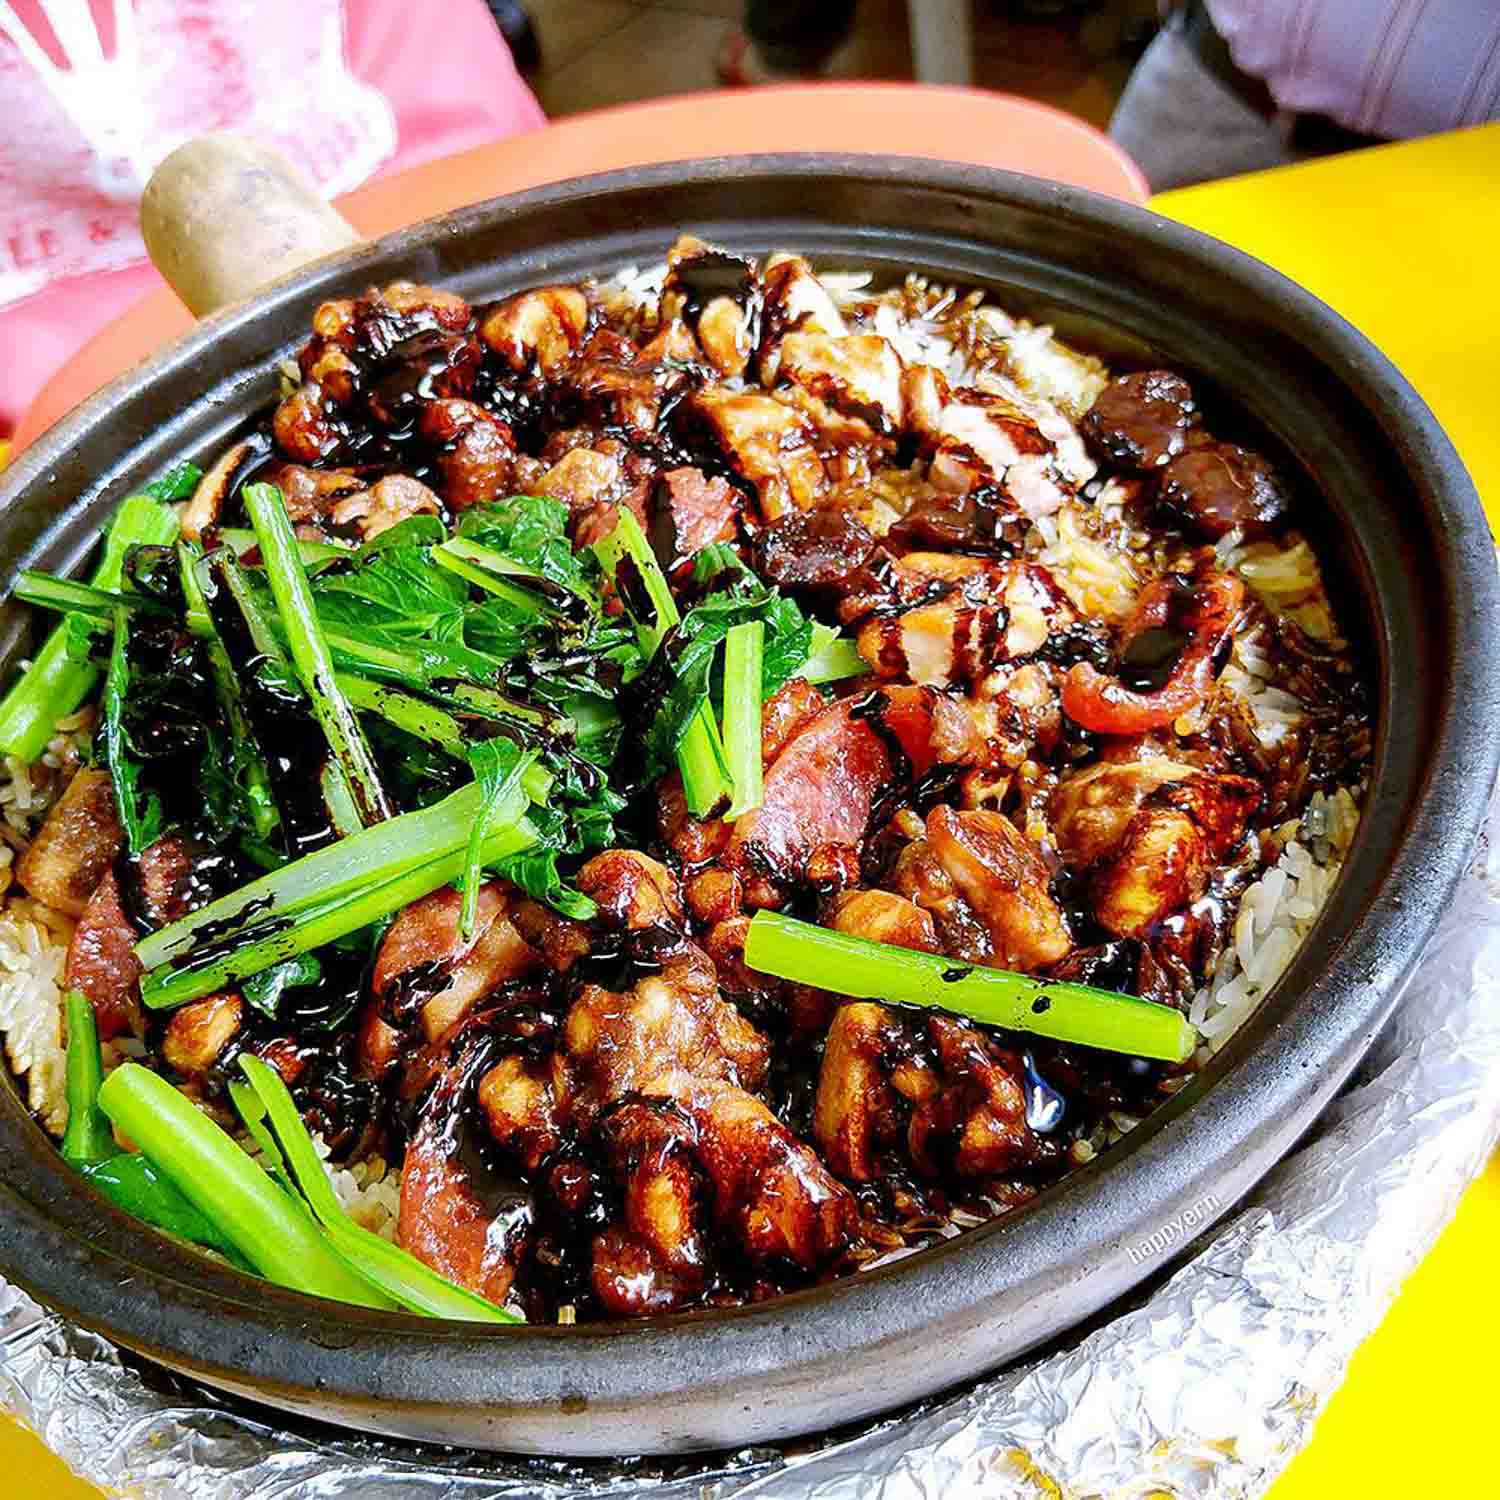 Claypot Dishes - Yew Chuan Claypot Rice